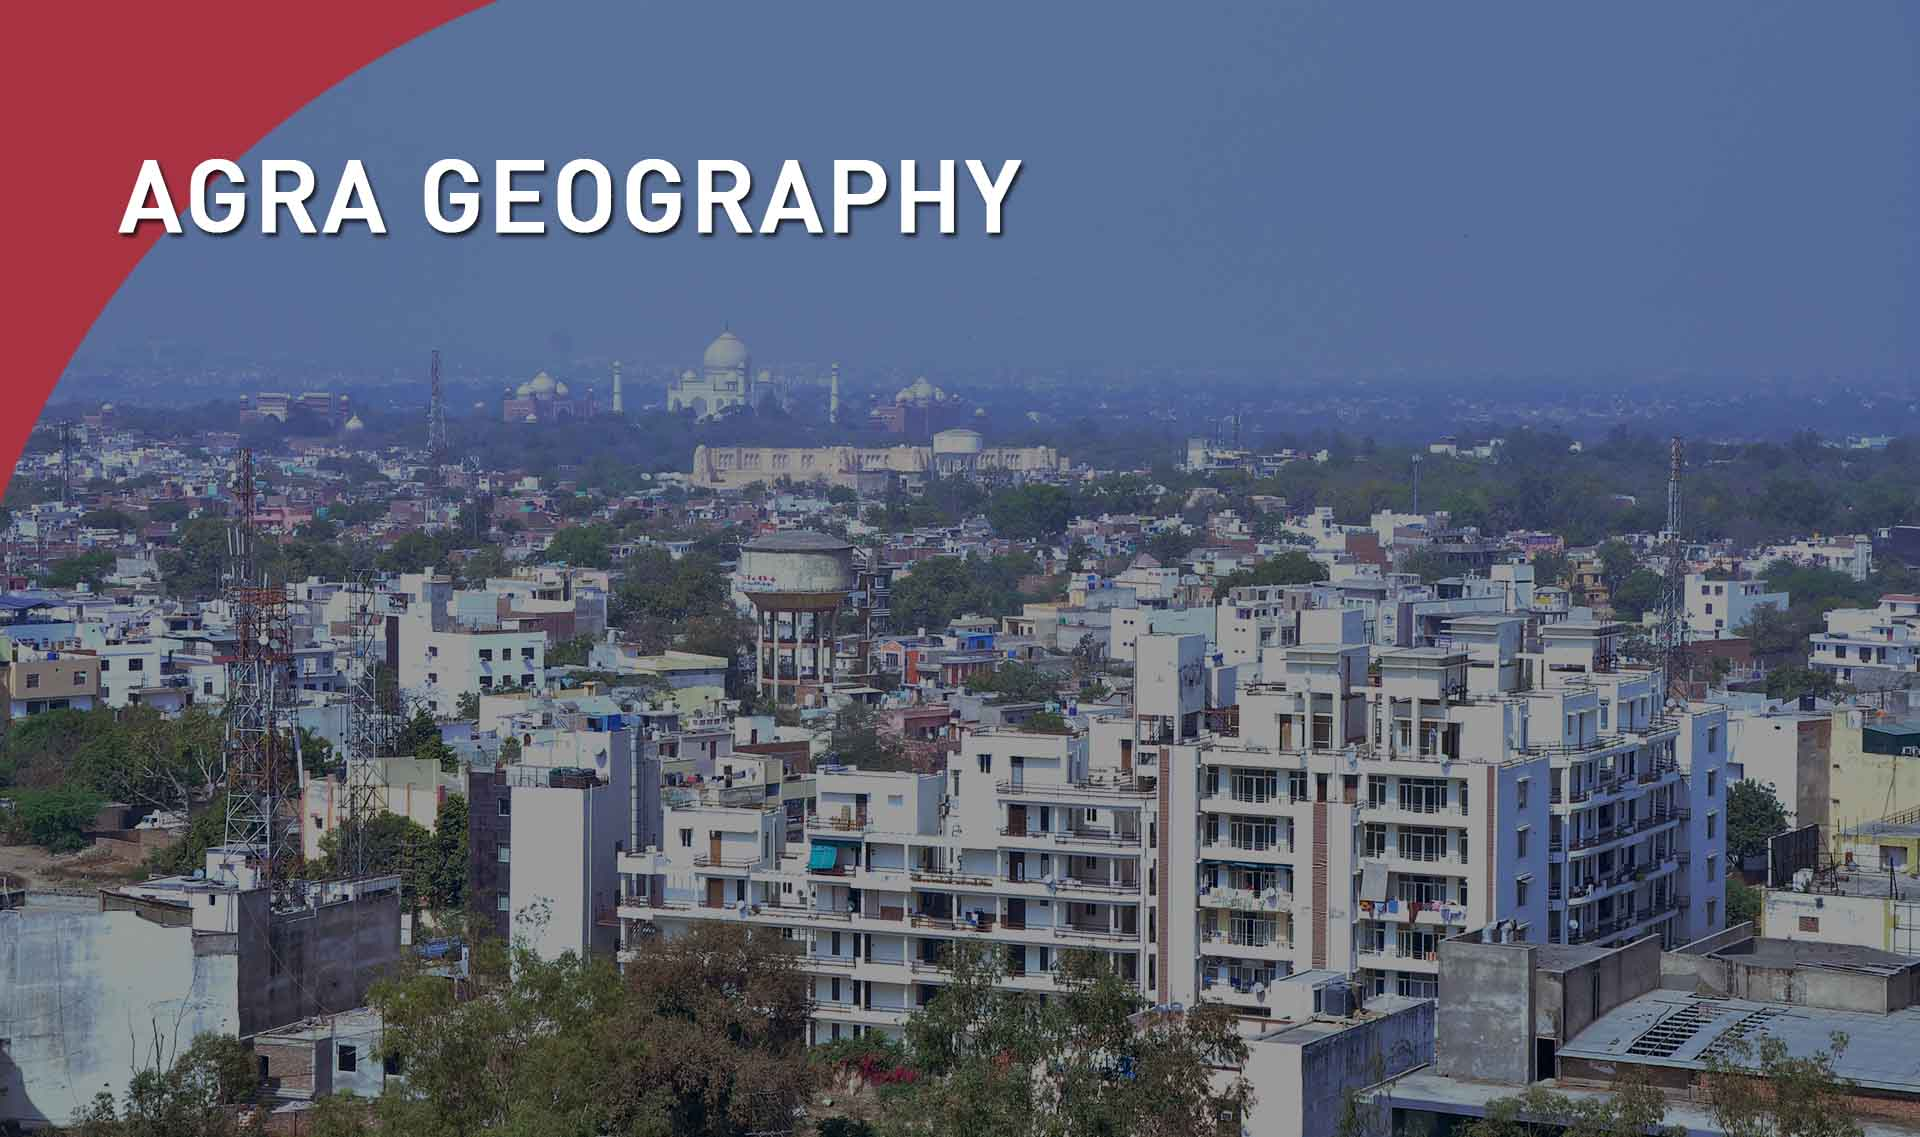 Agra Geography